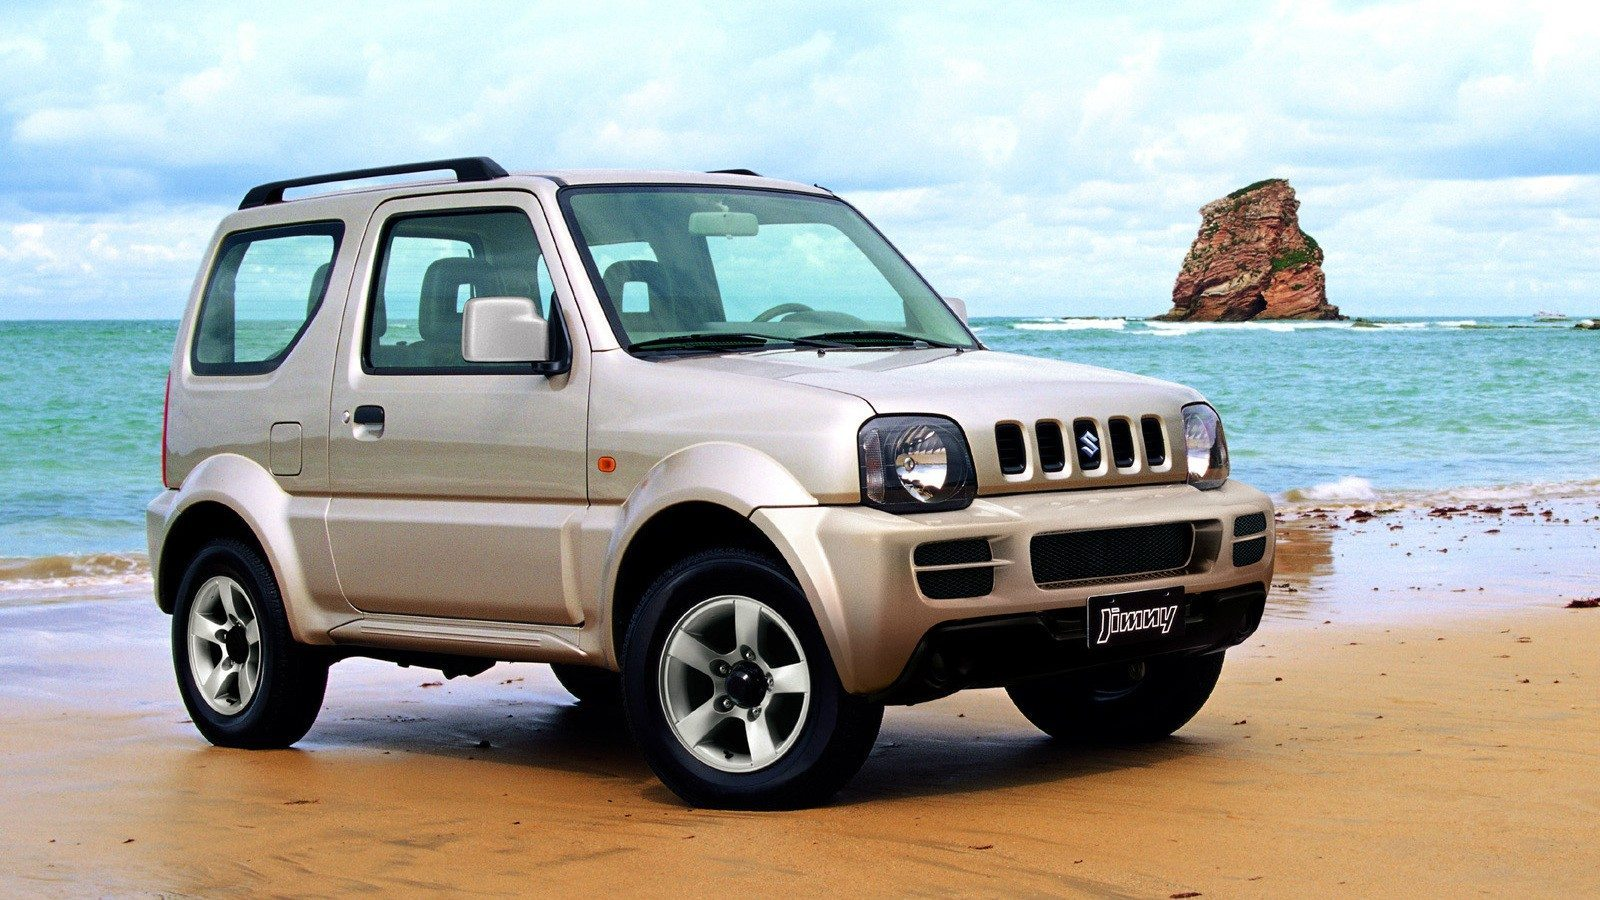 2017 suzuki jimny m t car 2017 suzuki jimny car price engine full technical specifications. Black Bedroom Furniture Sets. Home Design Ideas